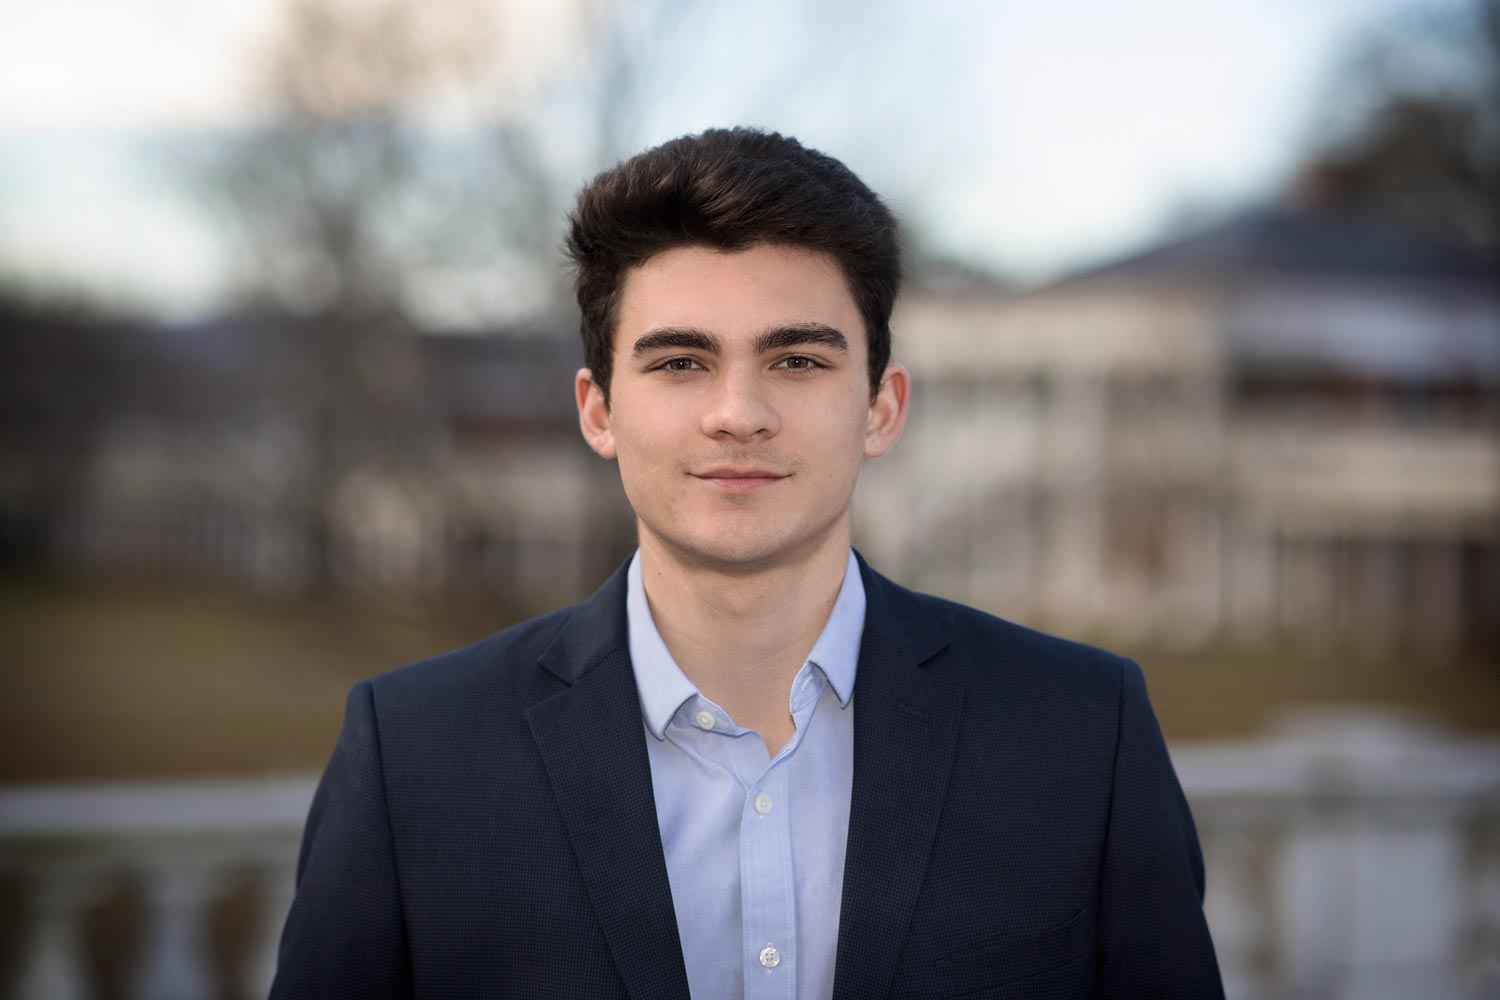 Dominic Pinnisi, a second-year student, is double majoring in aerospace engineering and physics.